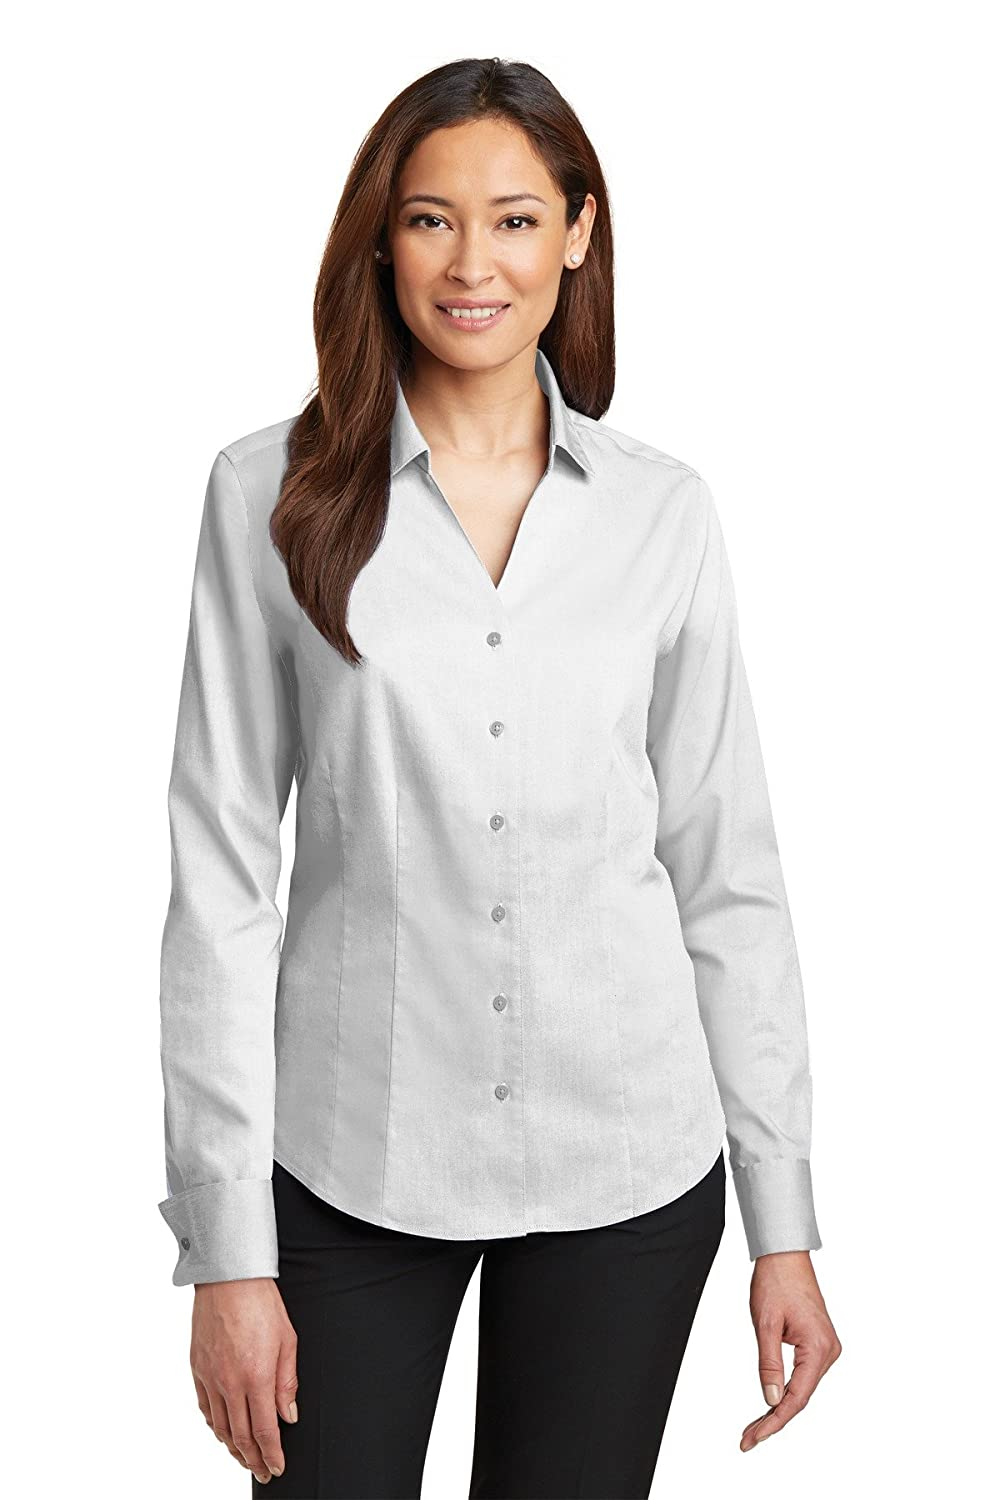 Red House Ladies French Cuff Non-Iron Pinpoint Oxford Shirt XL White